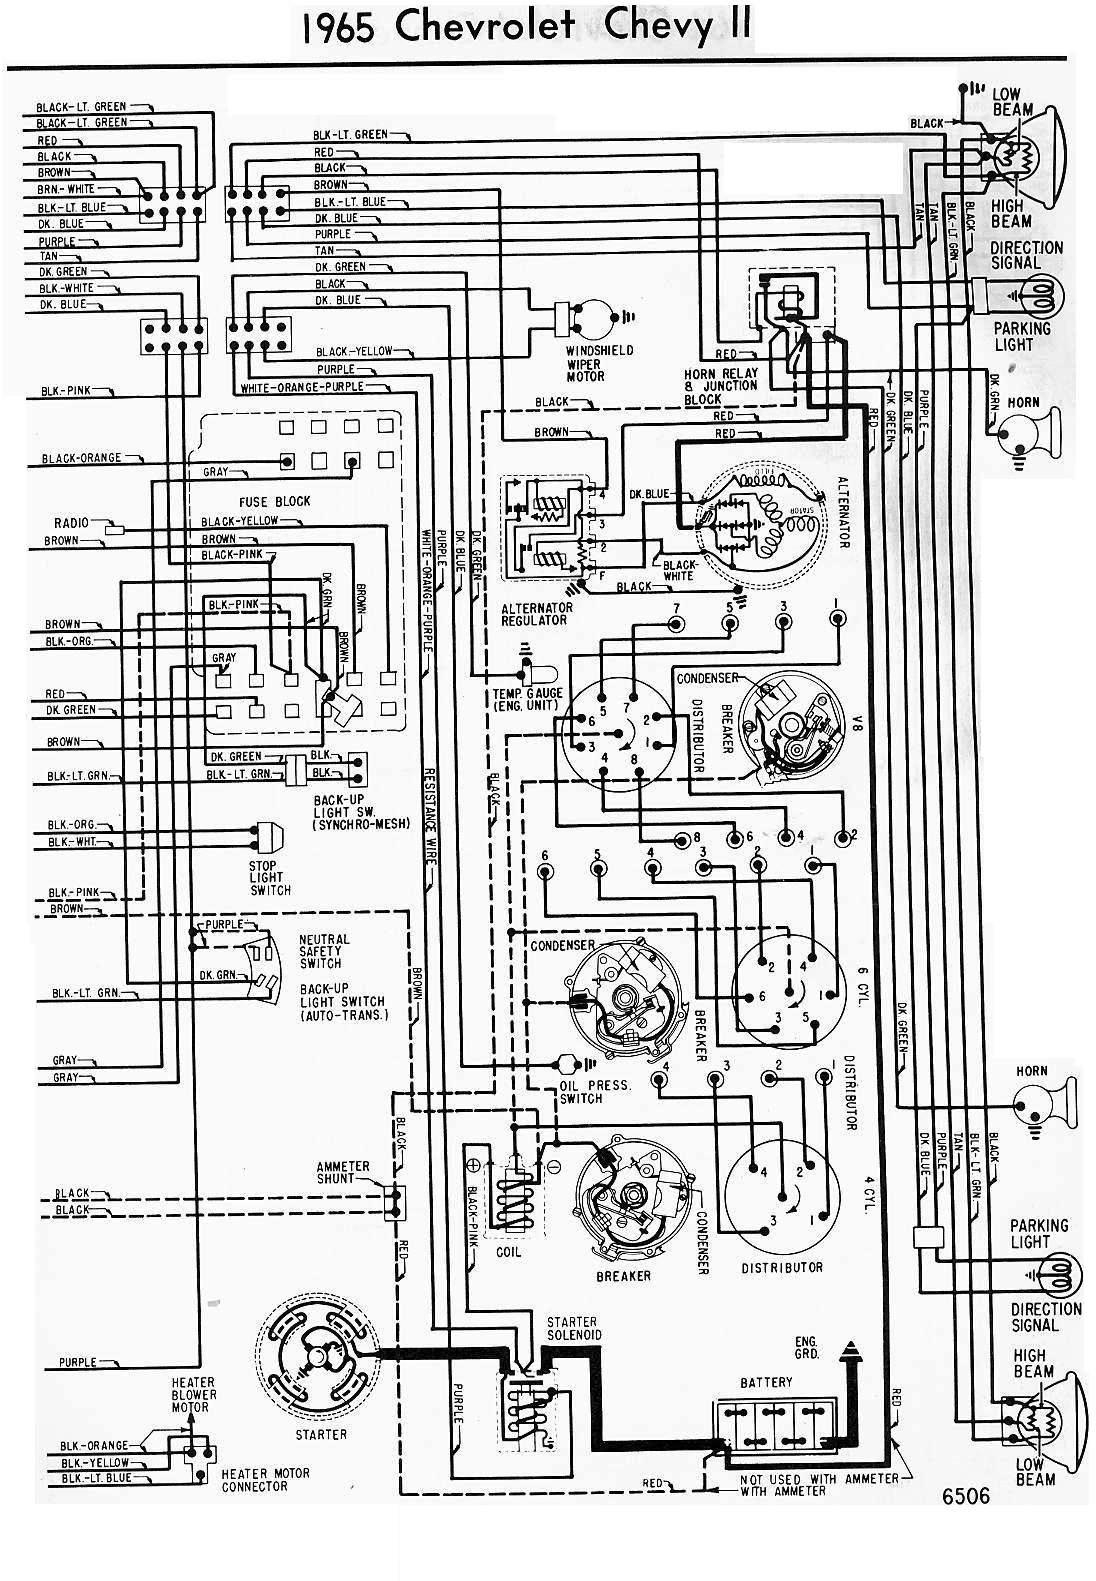 1965 chevy 283 alternator wiring diagram 1965 chevrolet chevy ii wiring diagram | all about wiring ... 1965 chevy el camino wiring diagram also gm turn signal switch